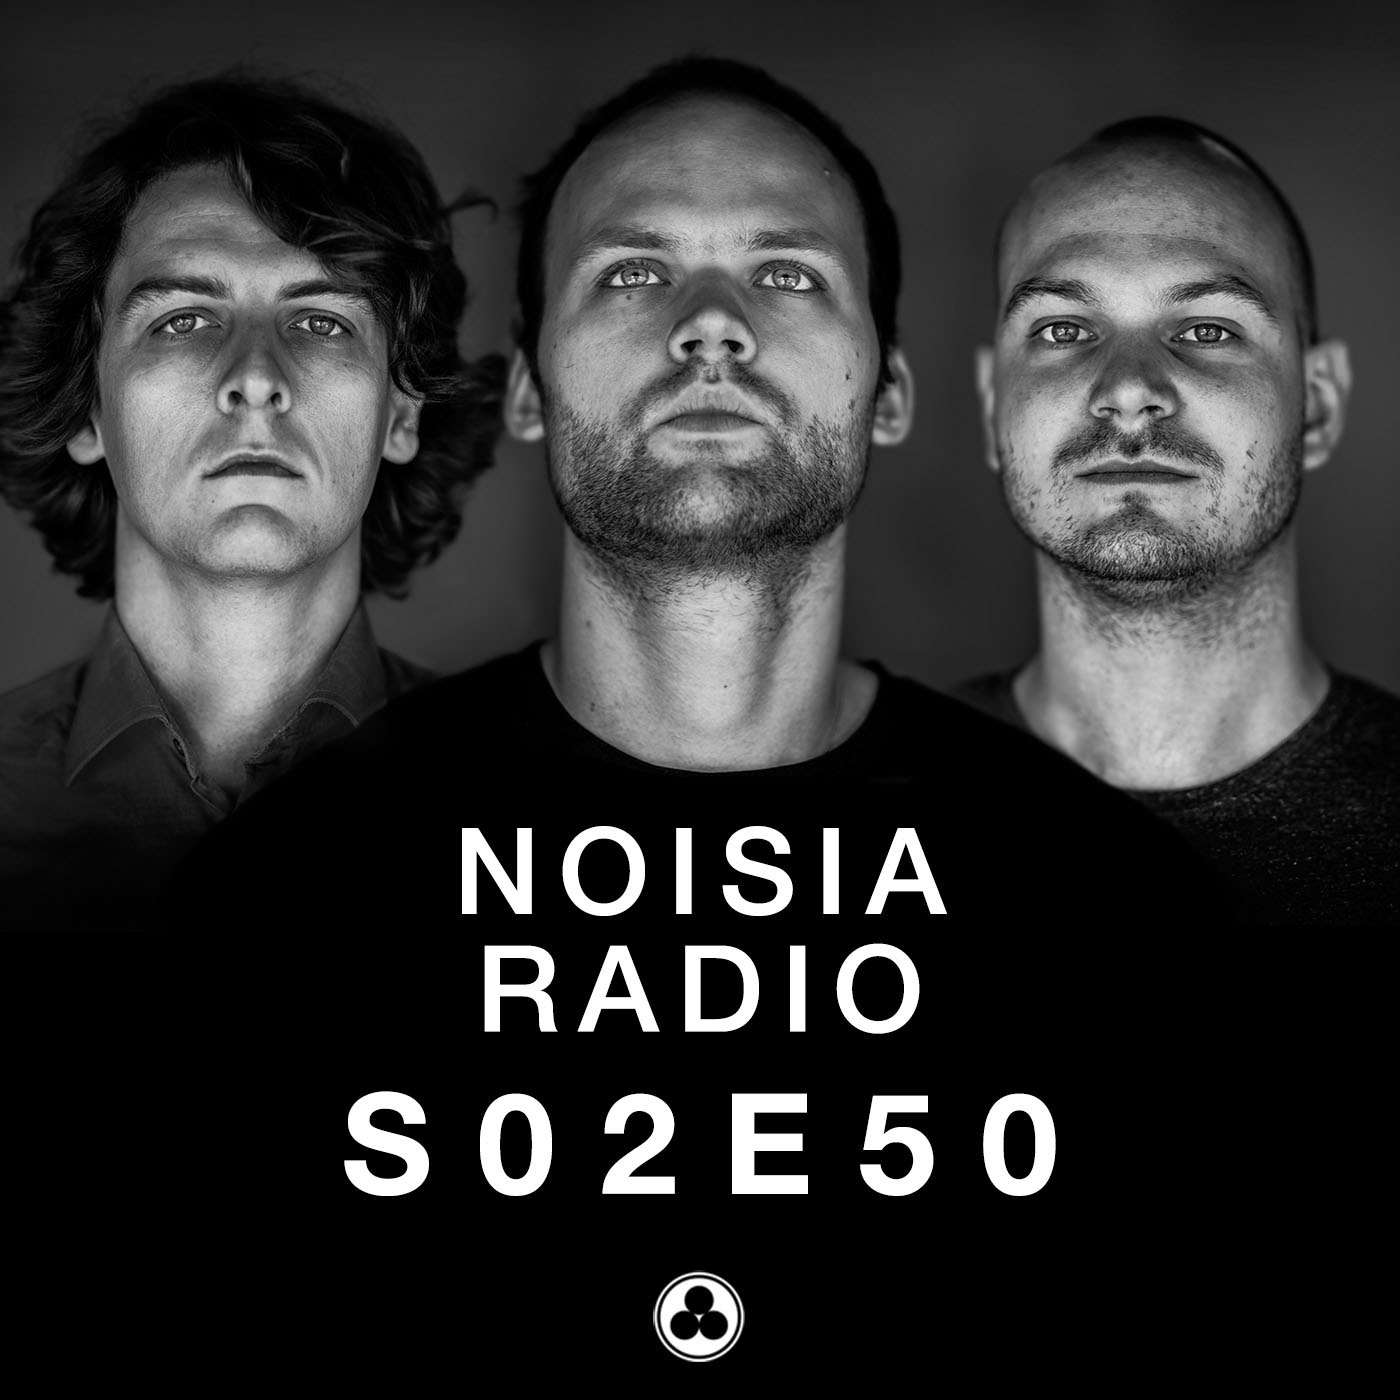 Noisia Radio S02E50